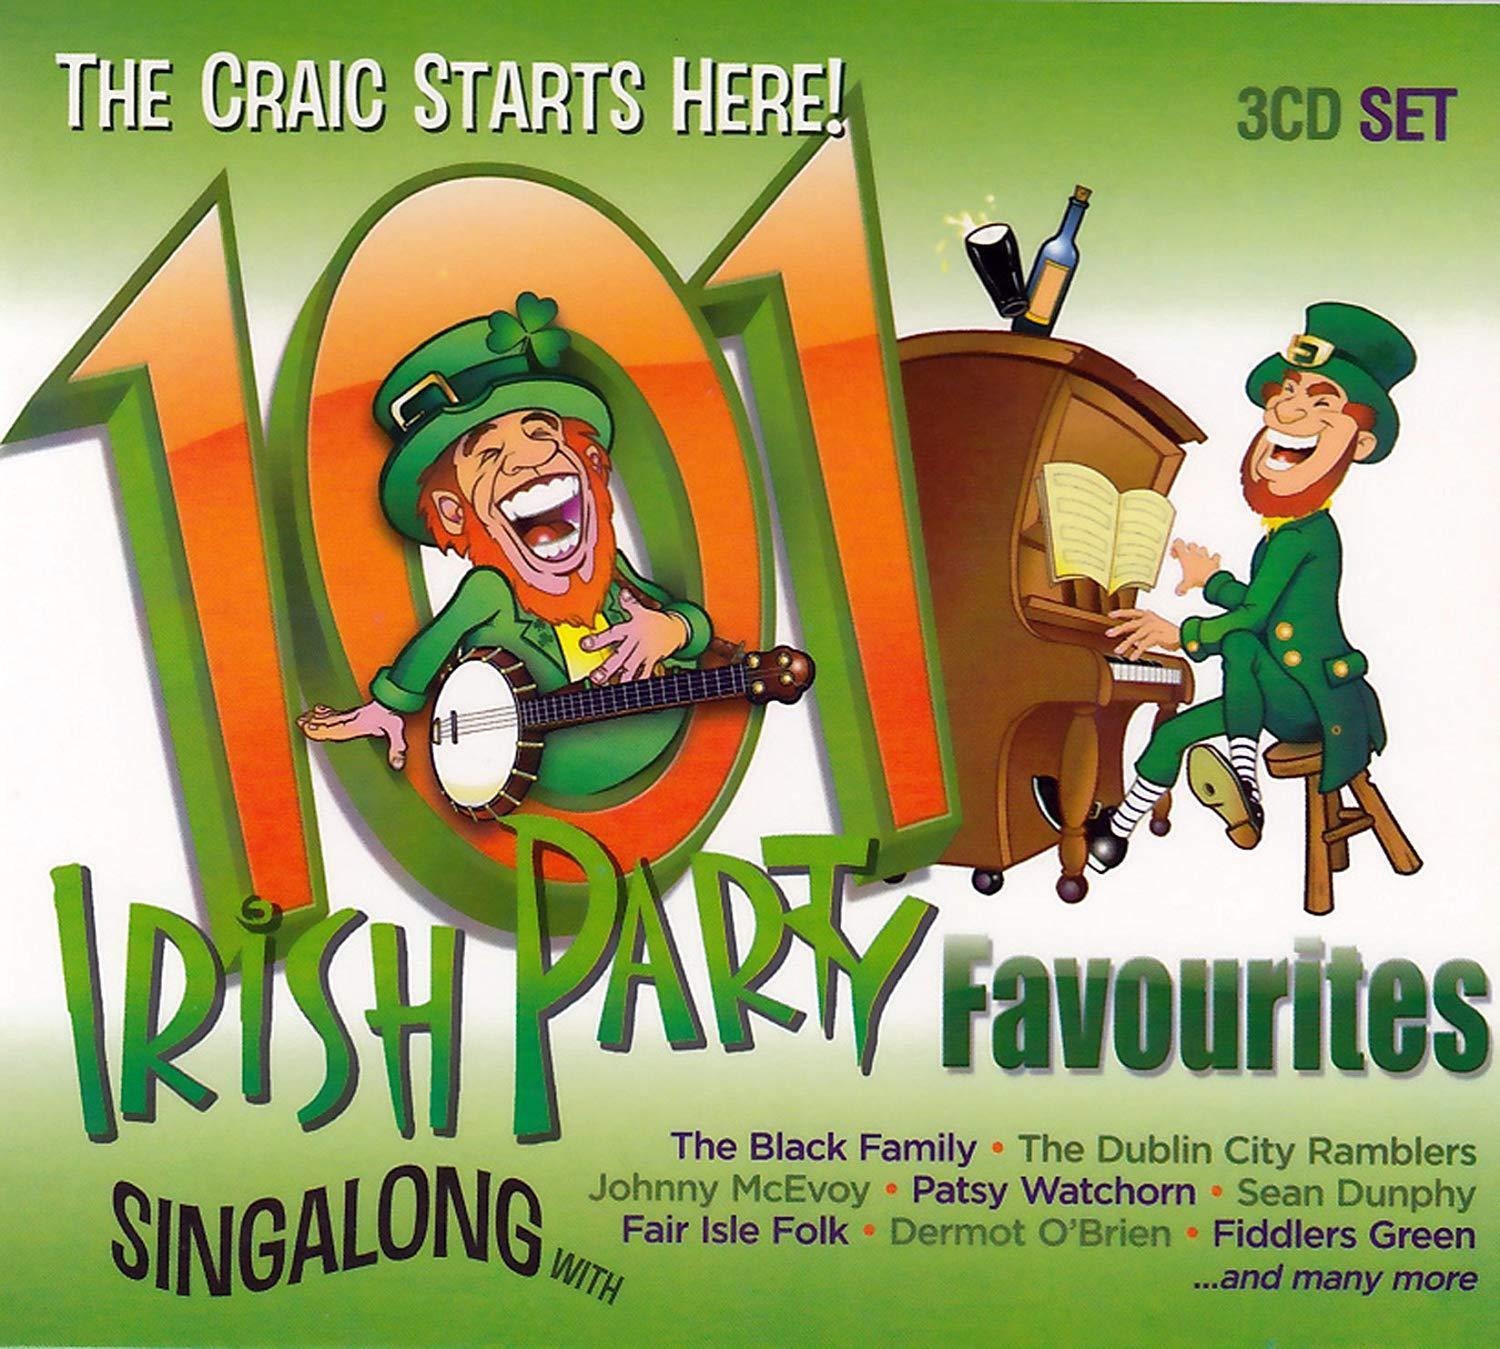 101 IRISH PARTY FAVOURITES [CD]